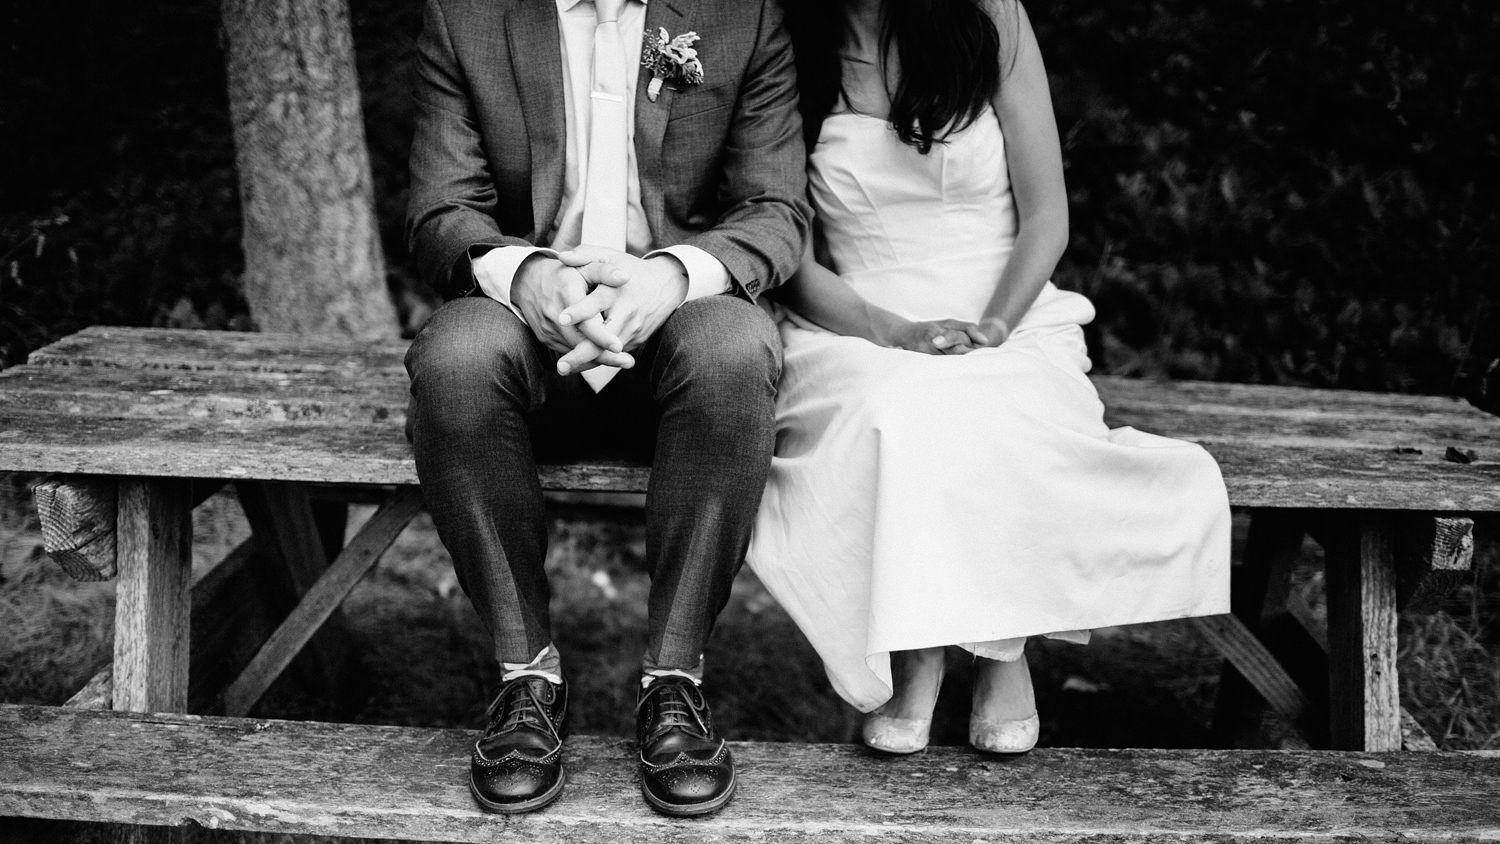 ryan-flynn-photography-best-wedding-photos-2014-0104.JPG